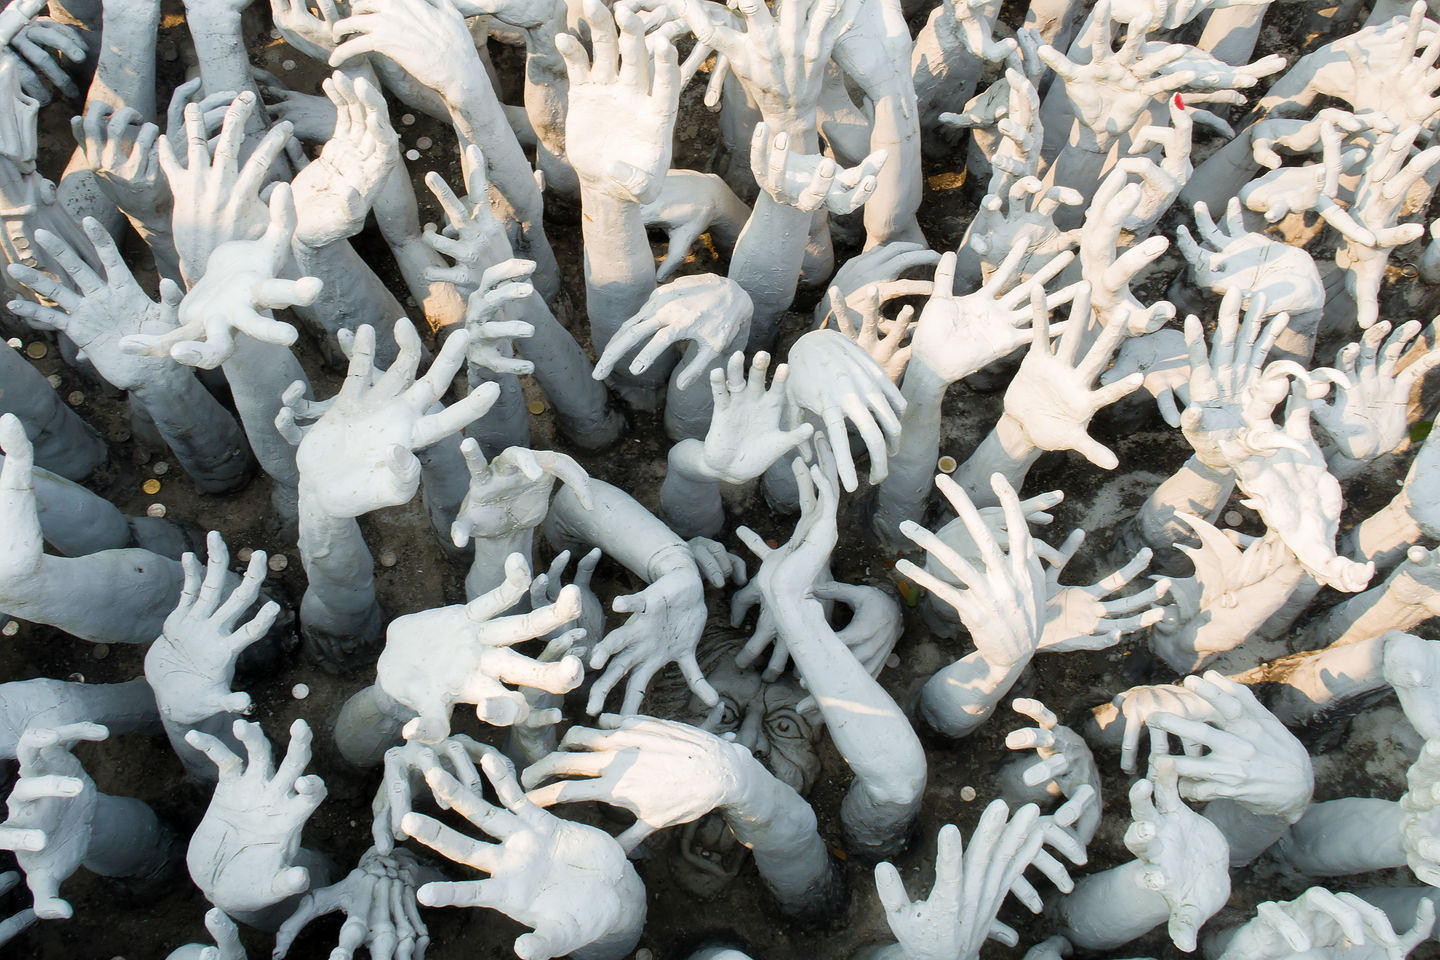 The beseeching hands of the suffering at the White Temple